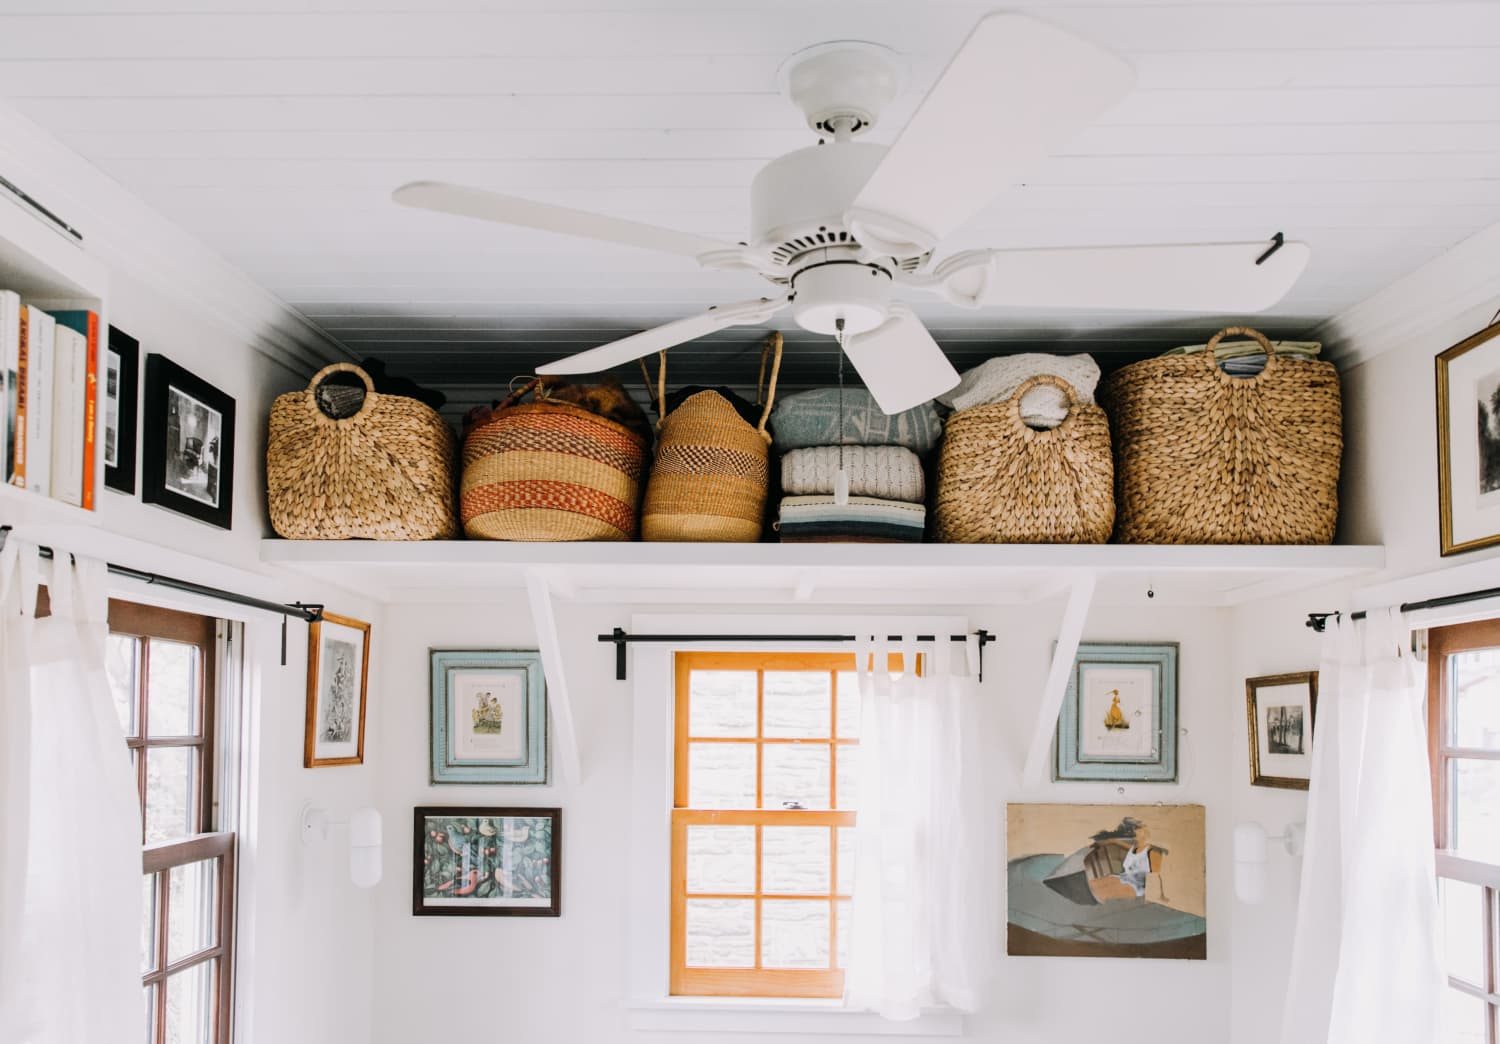 8 Places to Find Storage Baskets That Are so Pretty You'll Forget You Have Any Clutter